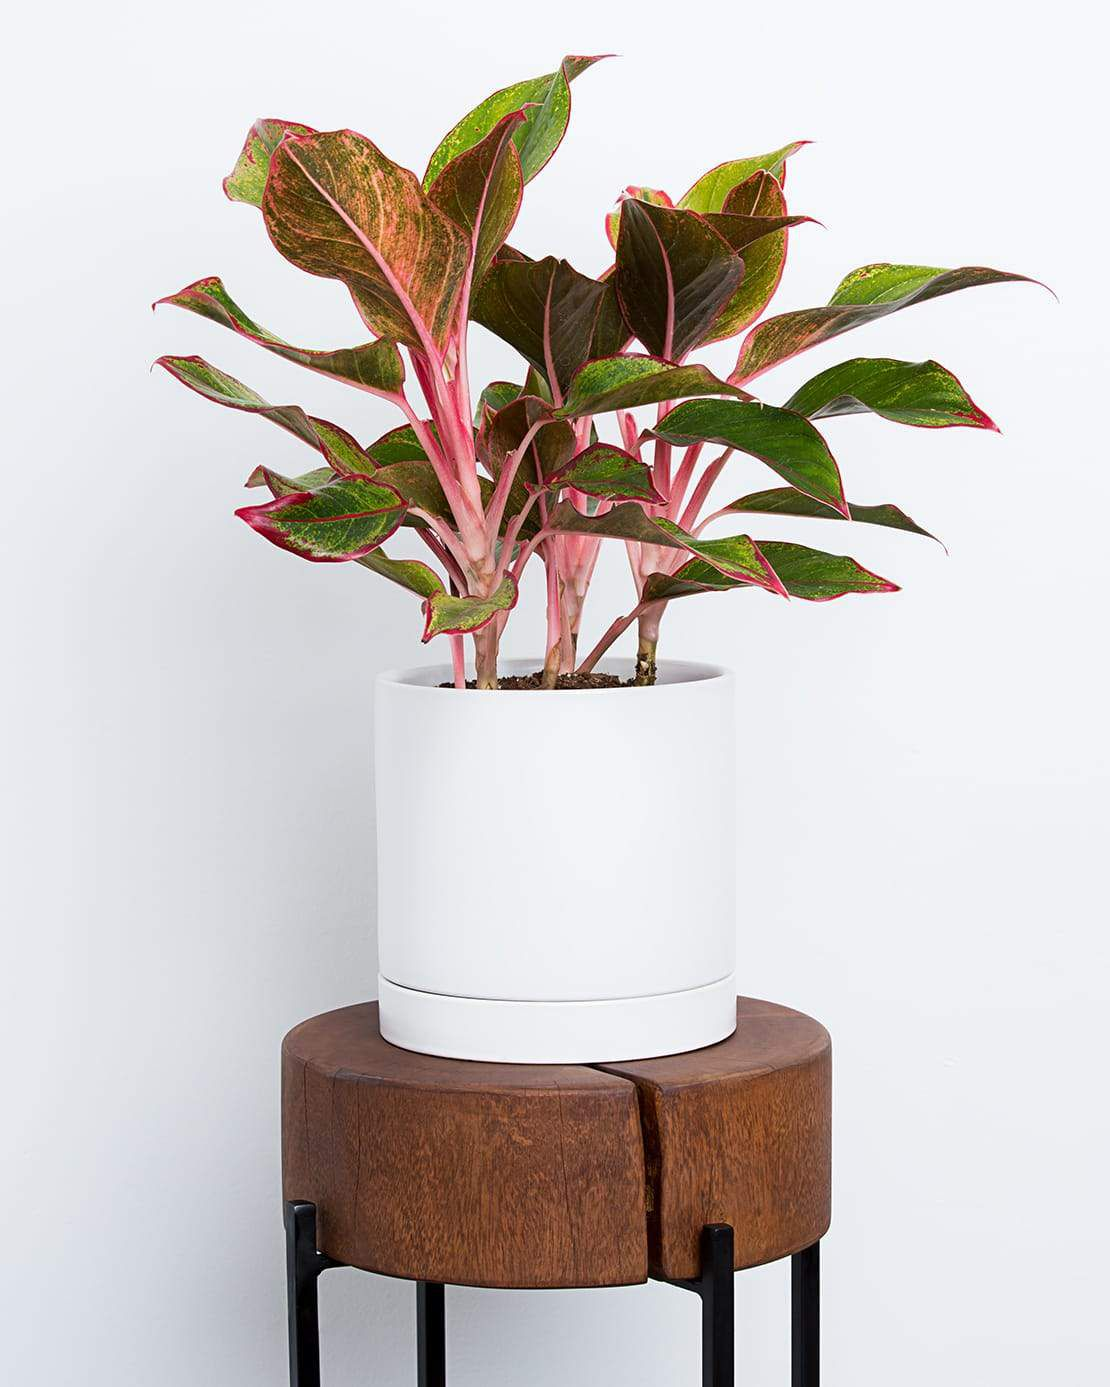 Red Chinese evergreen plant in a white pot on a wood side table